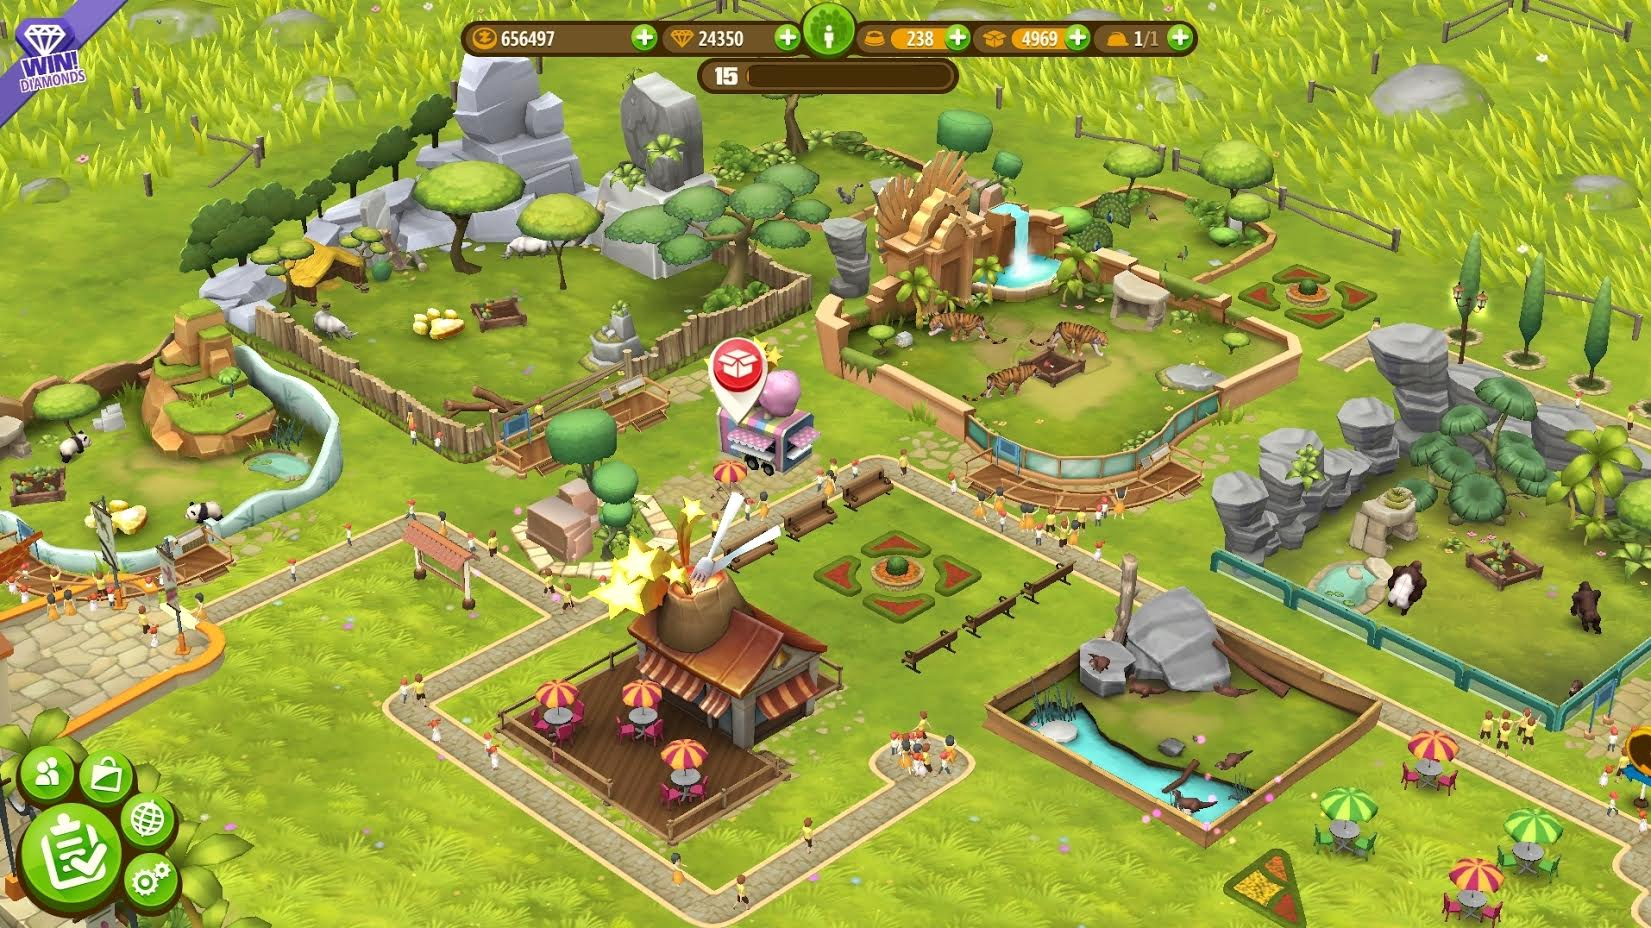 Zoo Tycoon Friends lets you play with animals on the bus